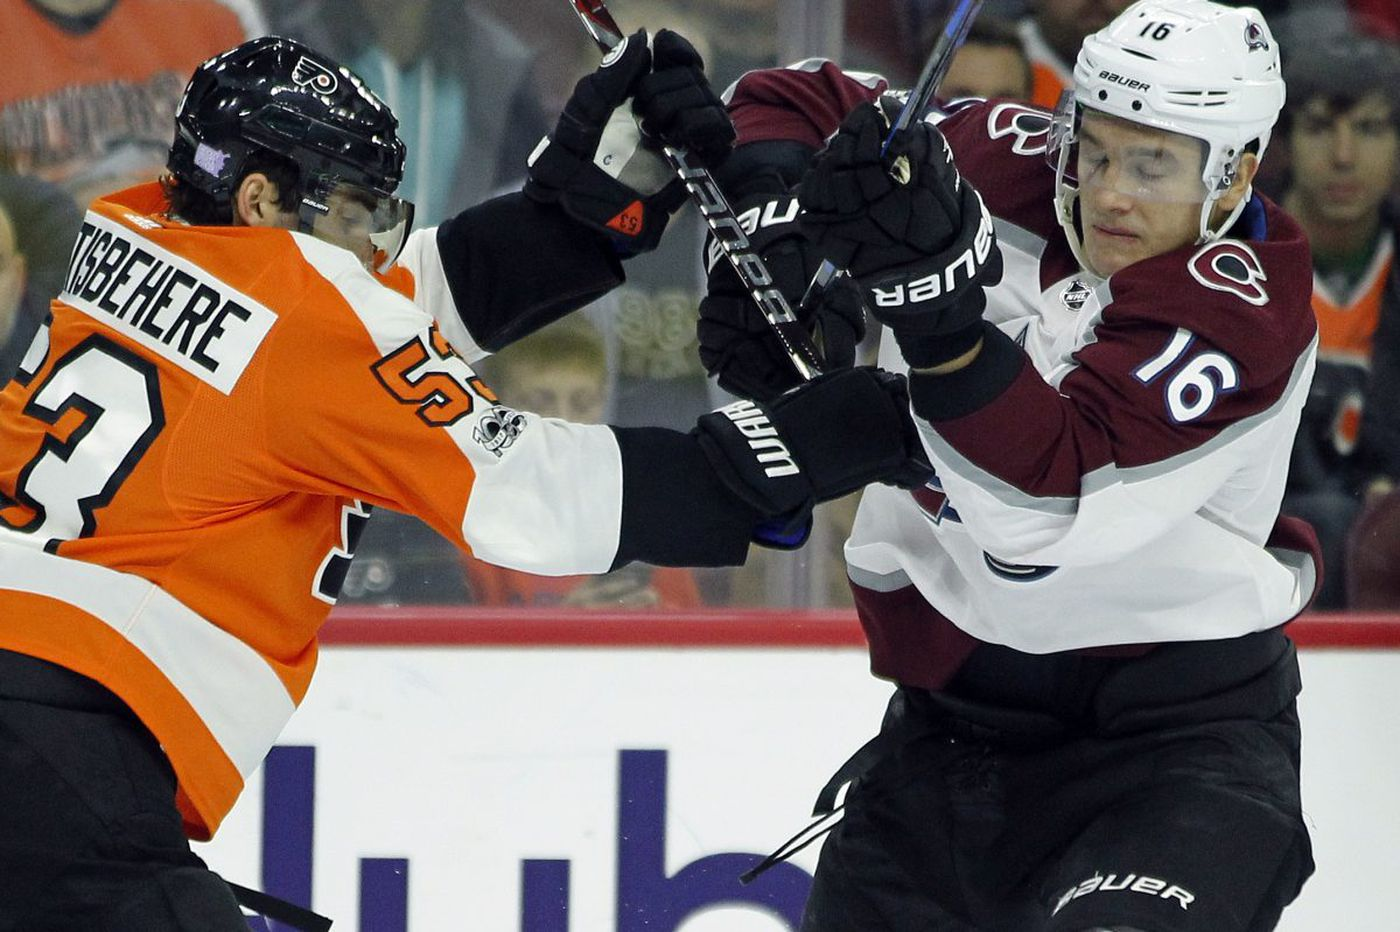 Another slow start costs Flyers momentum